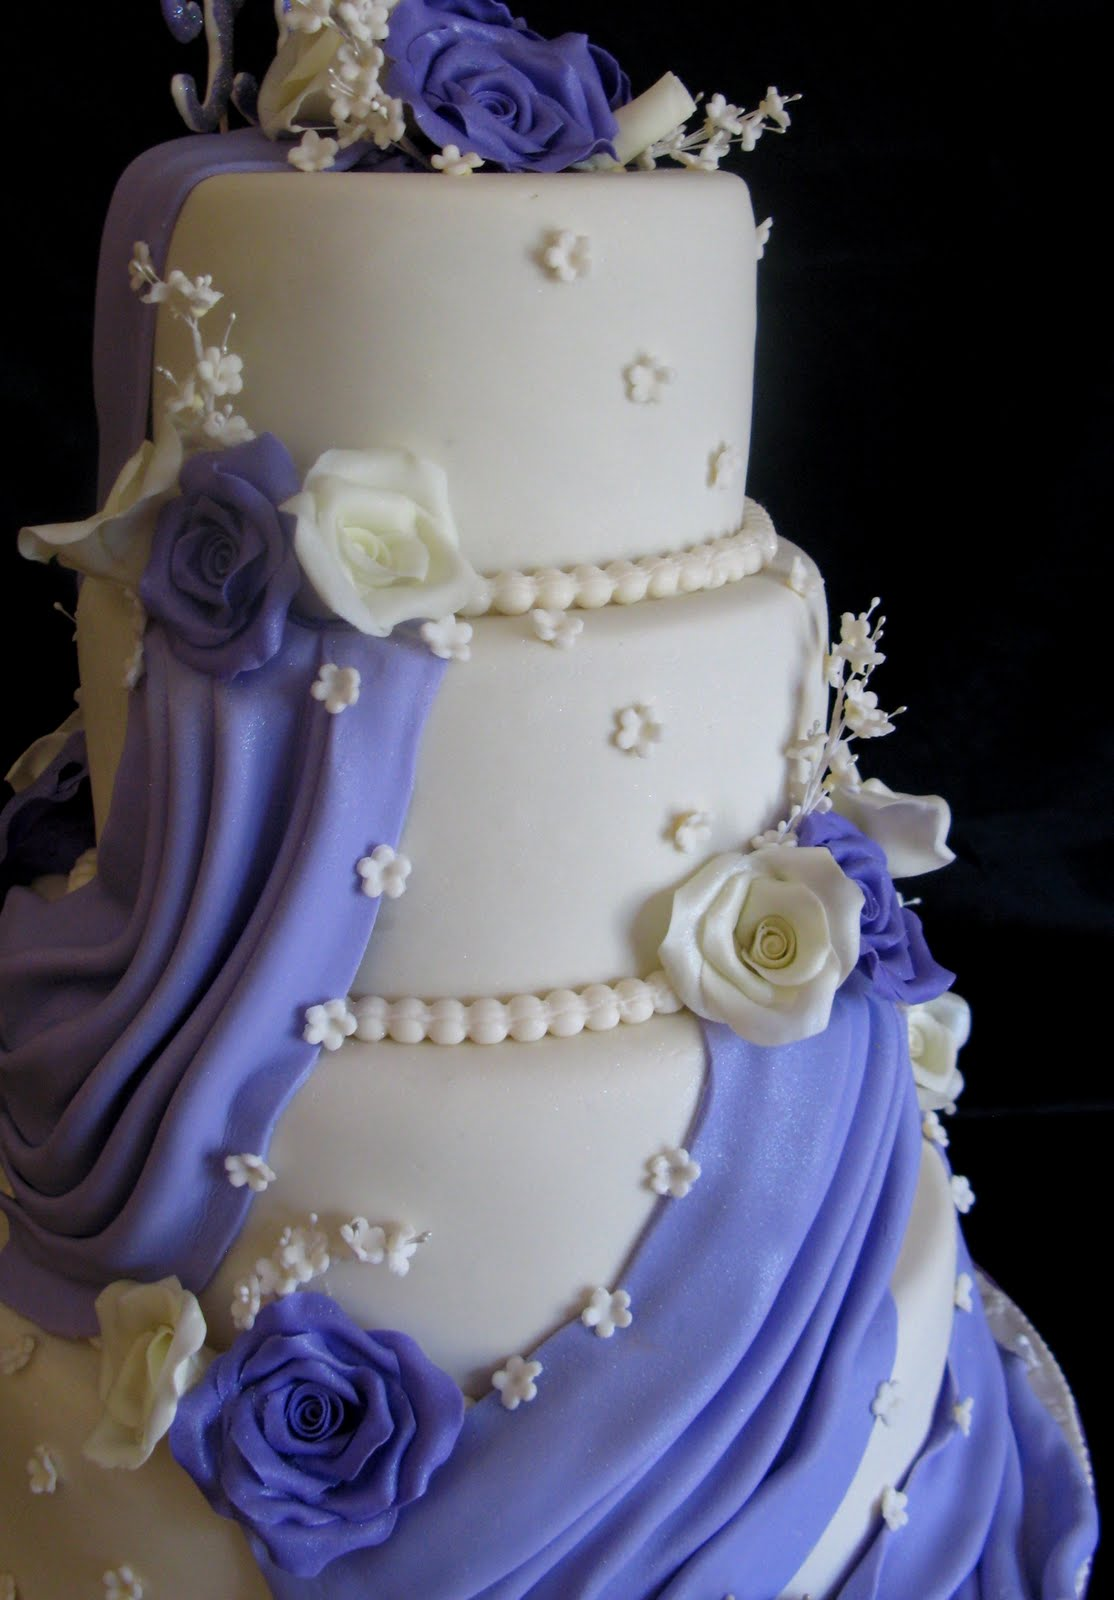 Rivista Cake Design Wedding : Sugarcraft by Soni: Three - Tier Wedding Cake - Roses & Drapes